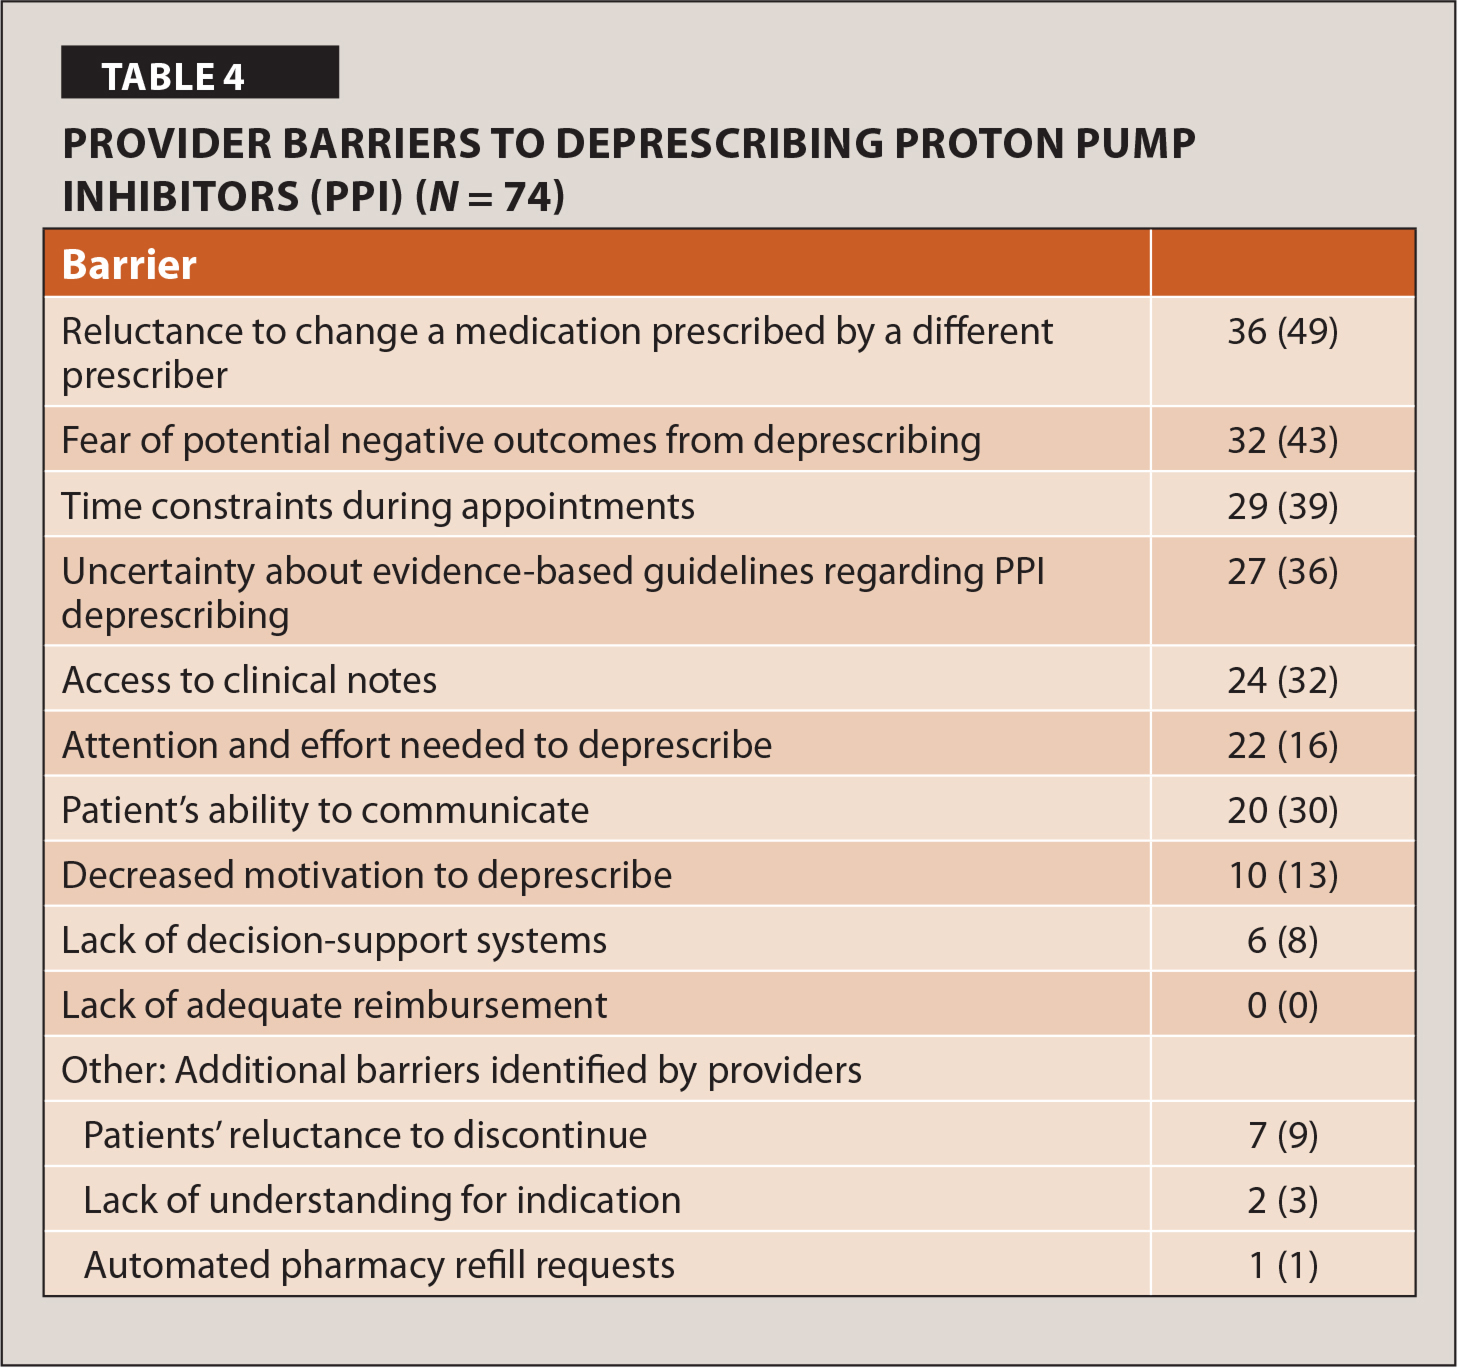 Provider Barriers to Deprescribing Proton Pump Inhibitors (PPI) (N = 74)